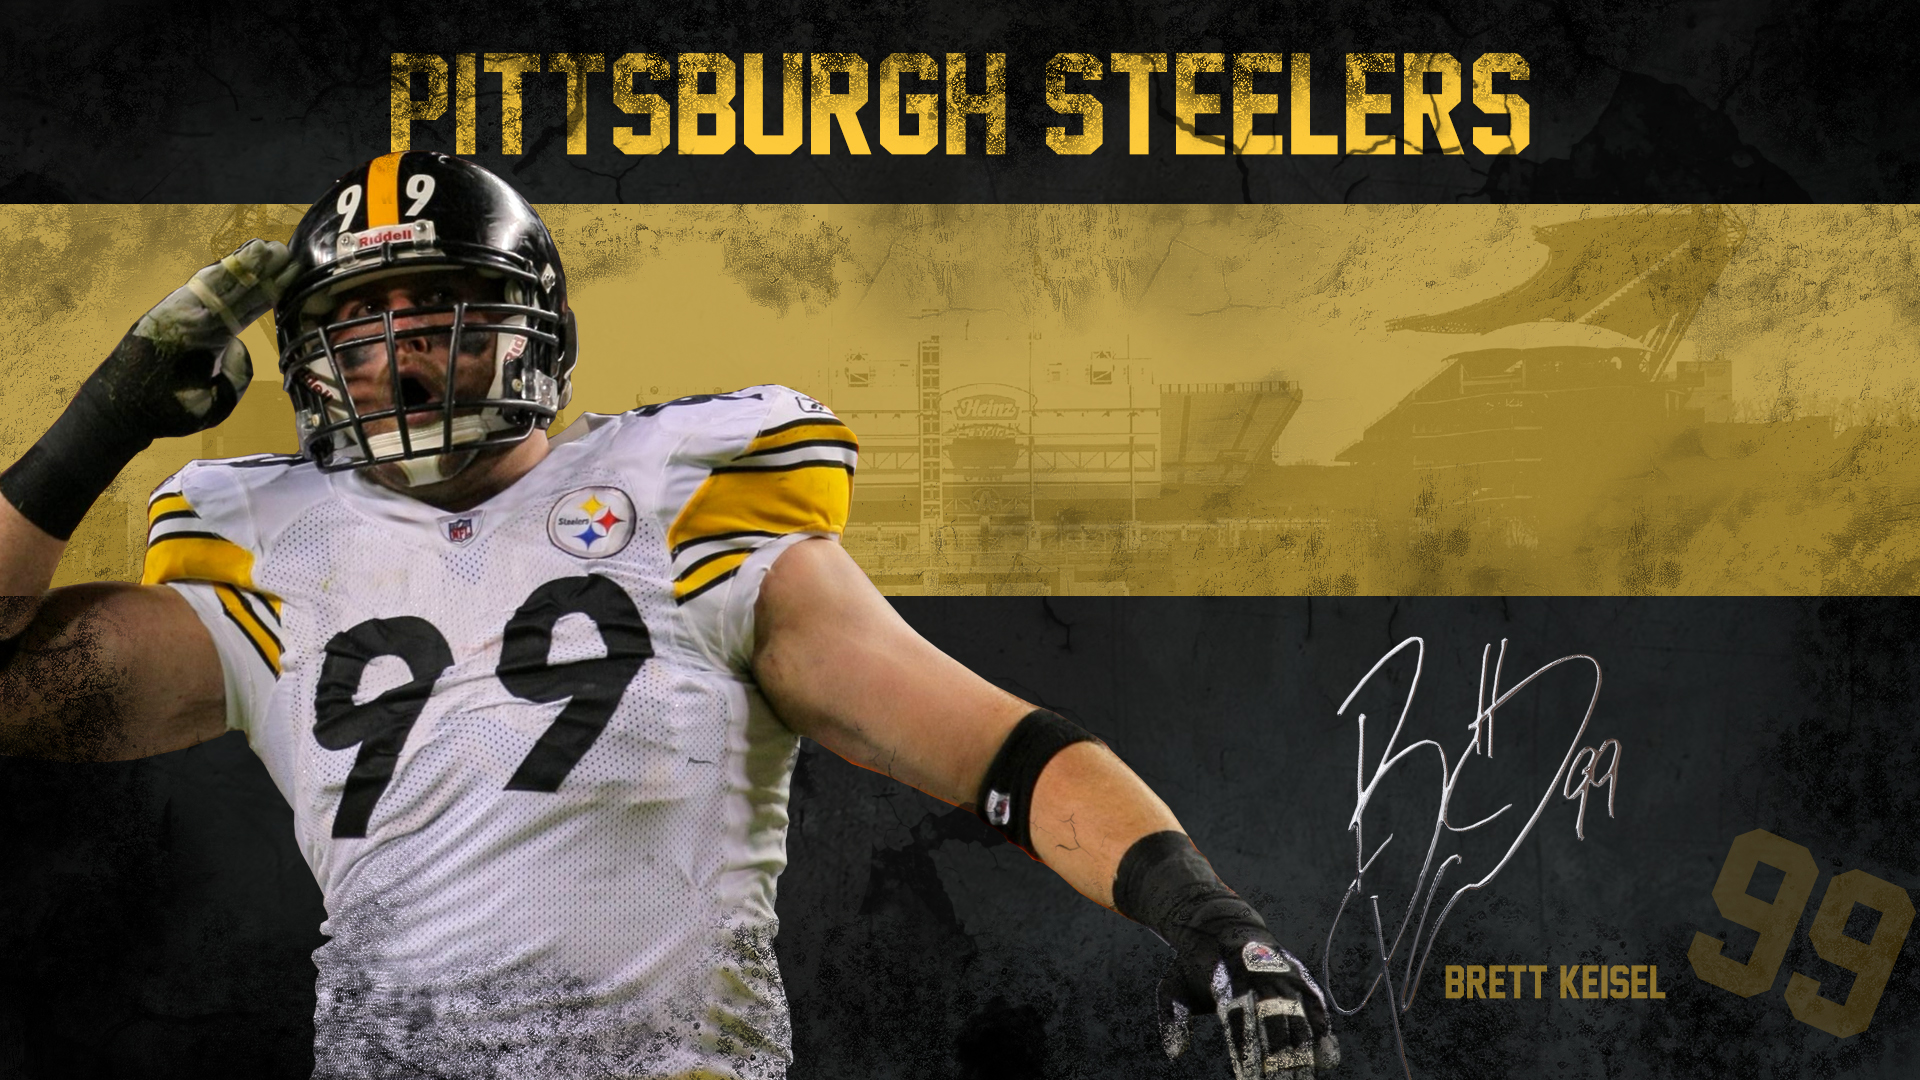 Art Images Pittsburgh Steelers Wallpaper HD.